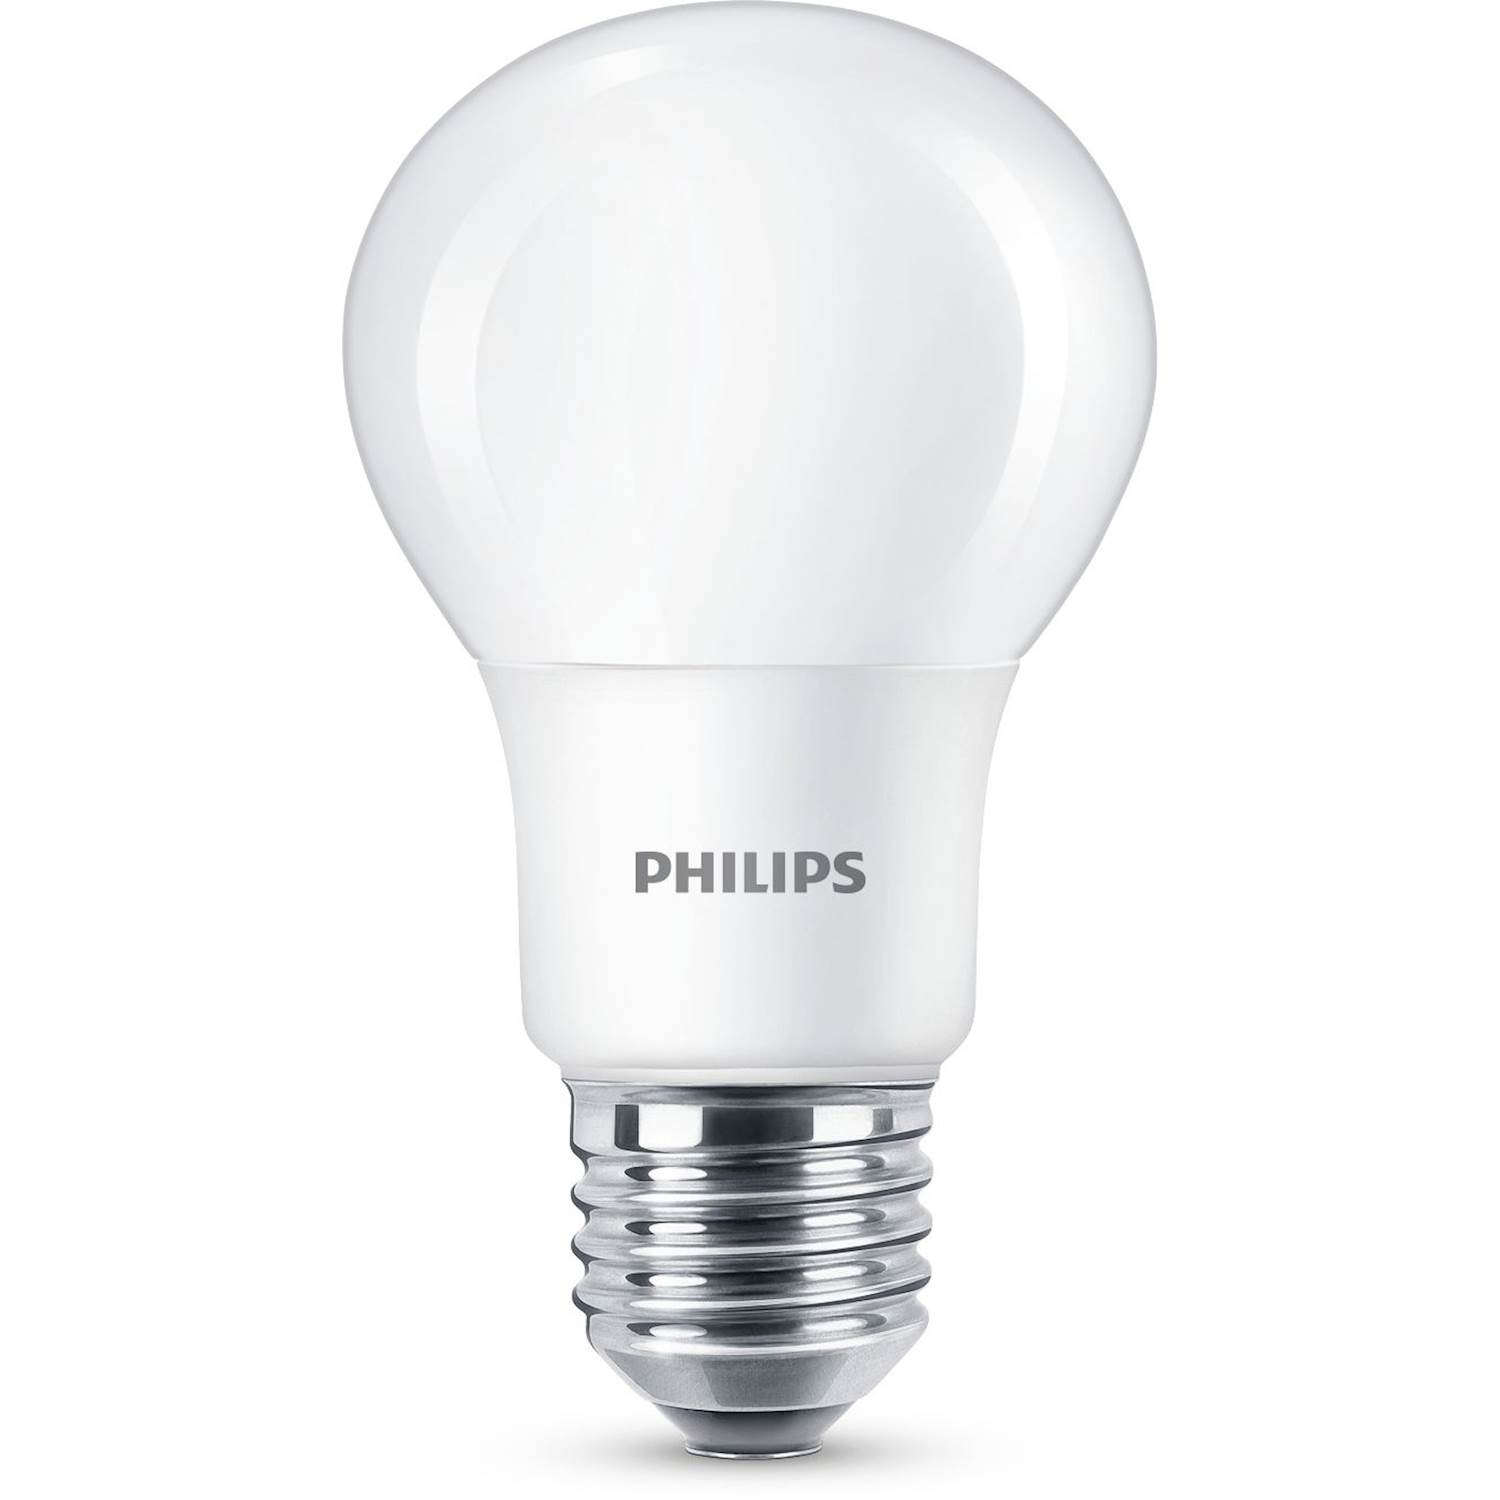 Philips LED 40w norm e27 nd